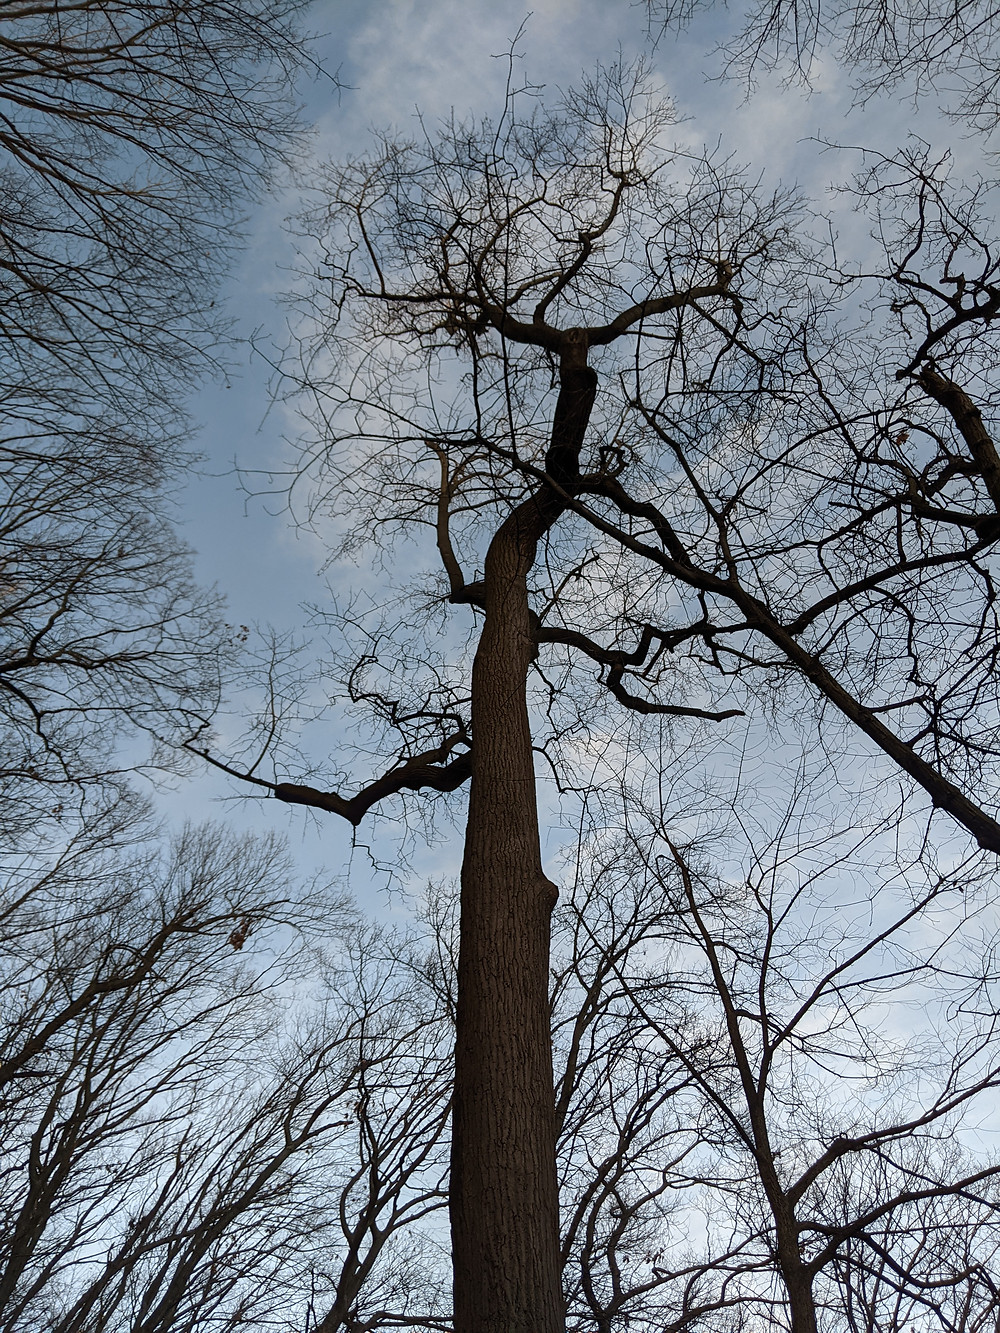 photo looking up to trees without leaves, reaching into sky with puffy clouds